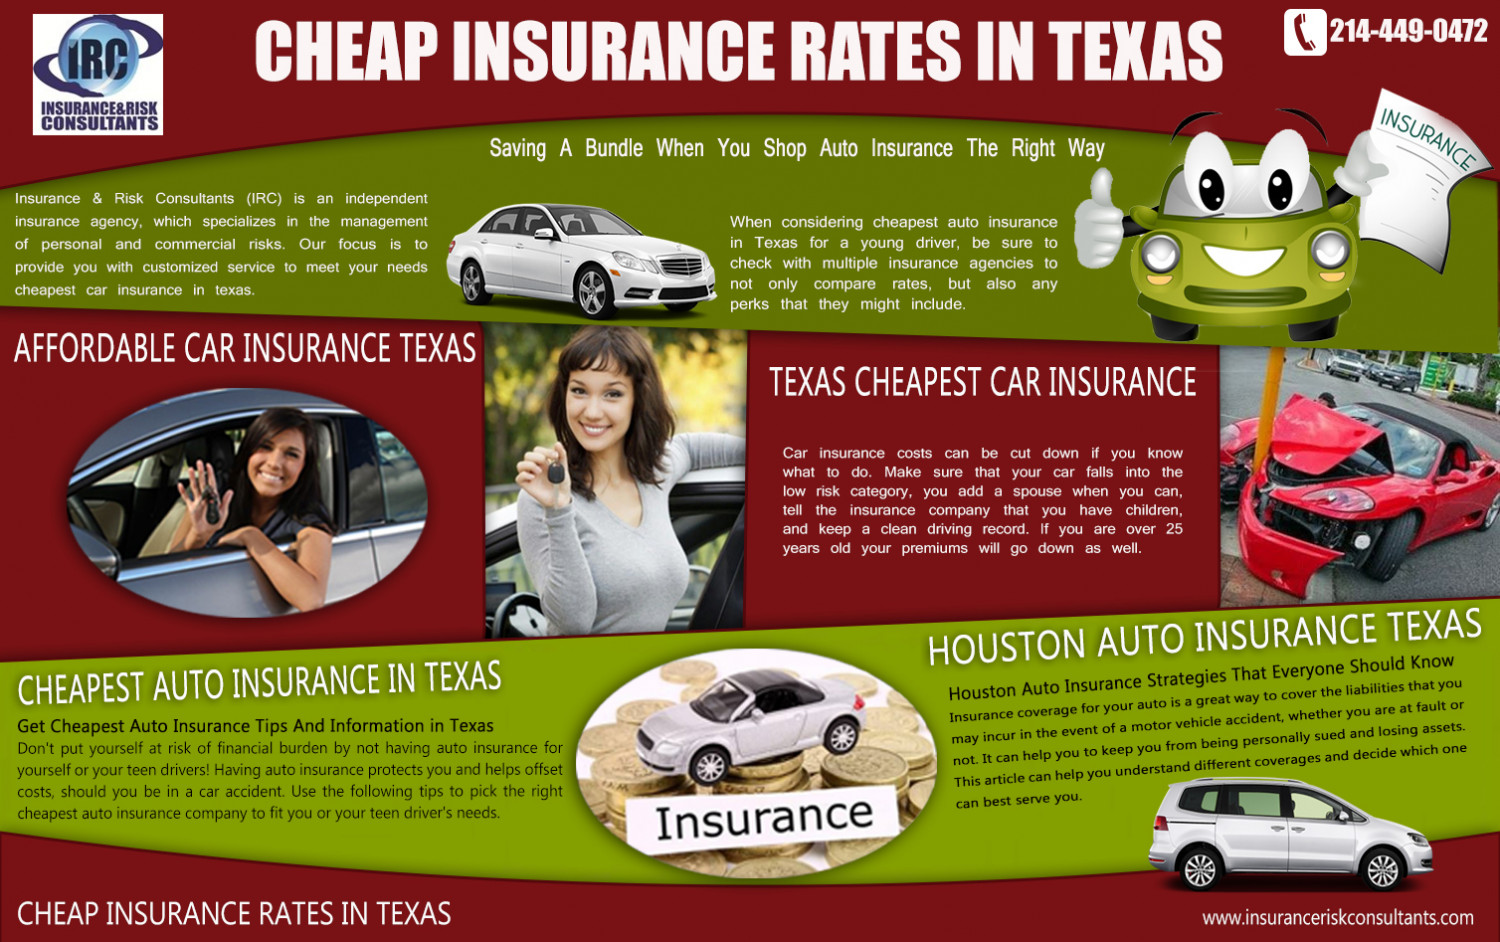 Affordable Car Insurance In Texas  Affordable Car Insurance. Price Of A Storage Unit Info Free Sales Leads. Personal Injury Attorneys New York. List Of Community Colleges In Tennessee. University Of Florida Summer Programs. Tampa Office Space For Lease. Home Appliance Repair Service. How Many Heart Transplants Are Done Each Year. Incentive Stock Option Plan Do Elephants Cry